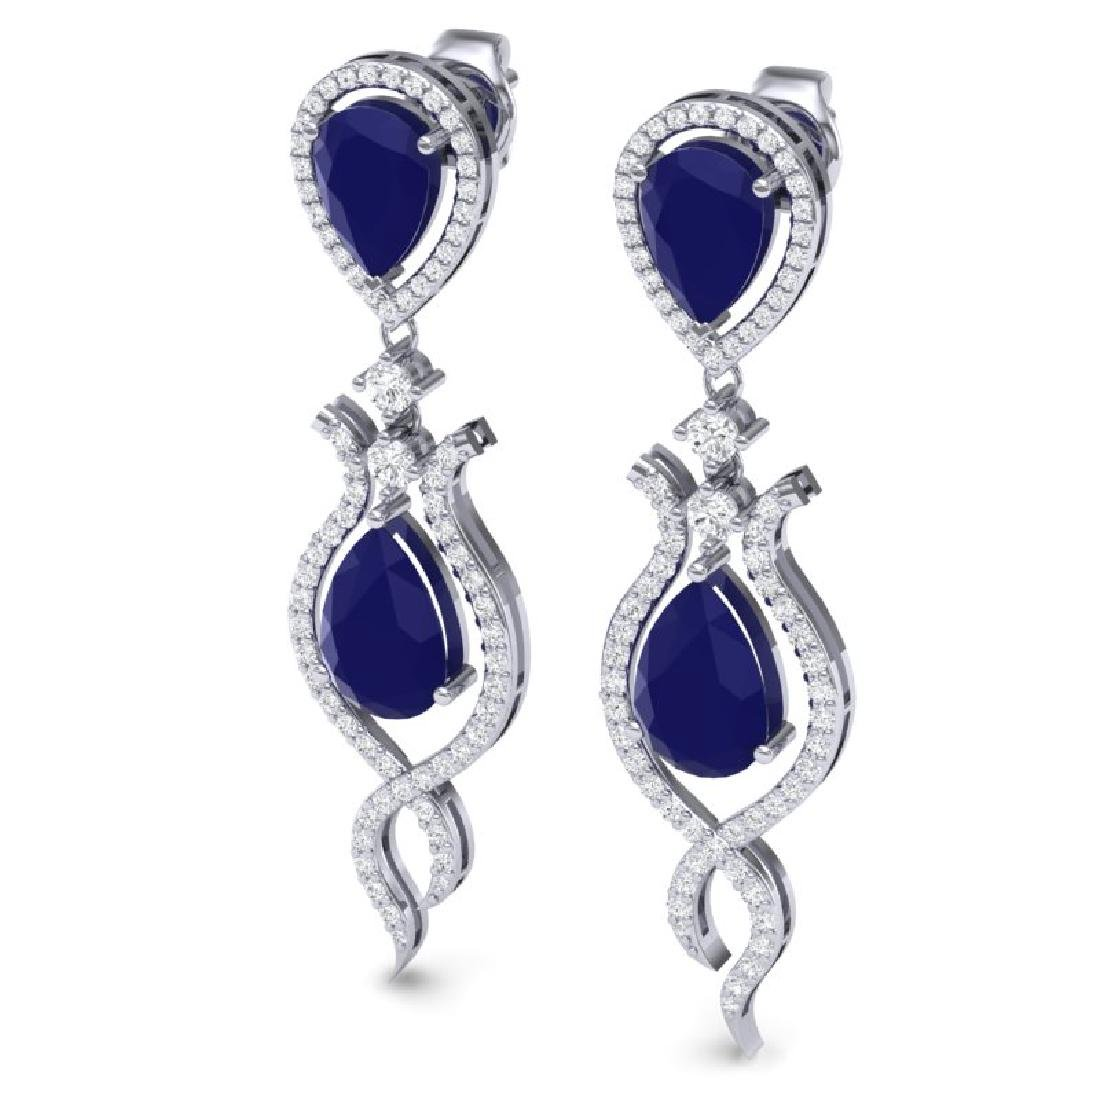 16.57 CTW Royalty Sapphire & VS Diamond Earrings 18K - 2